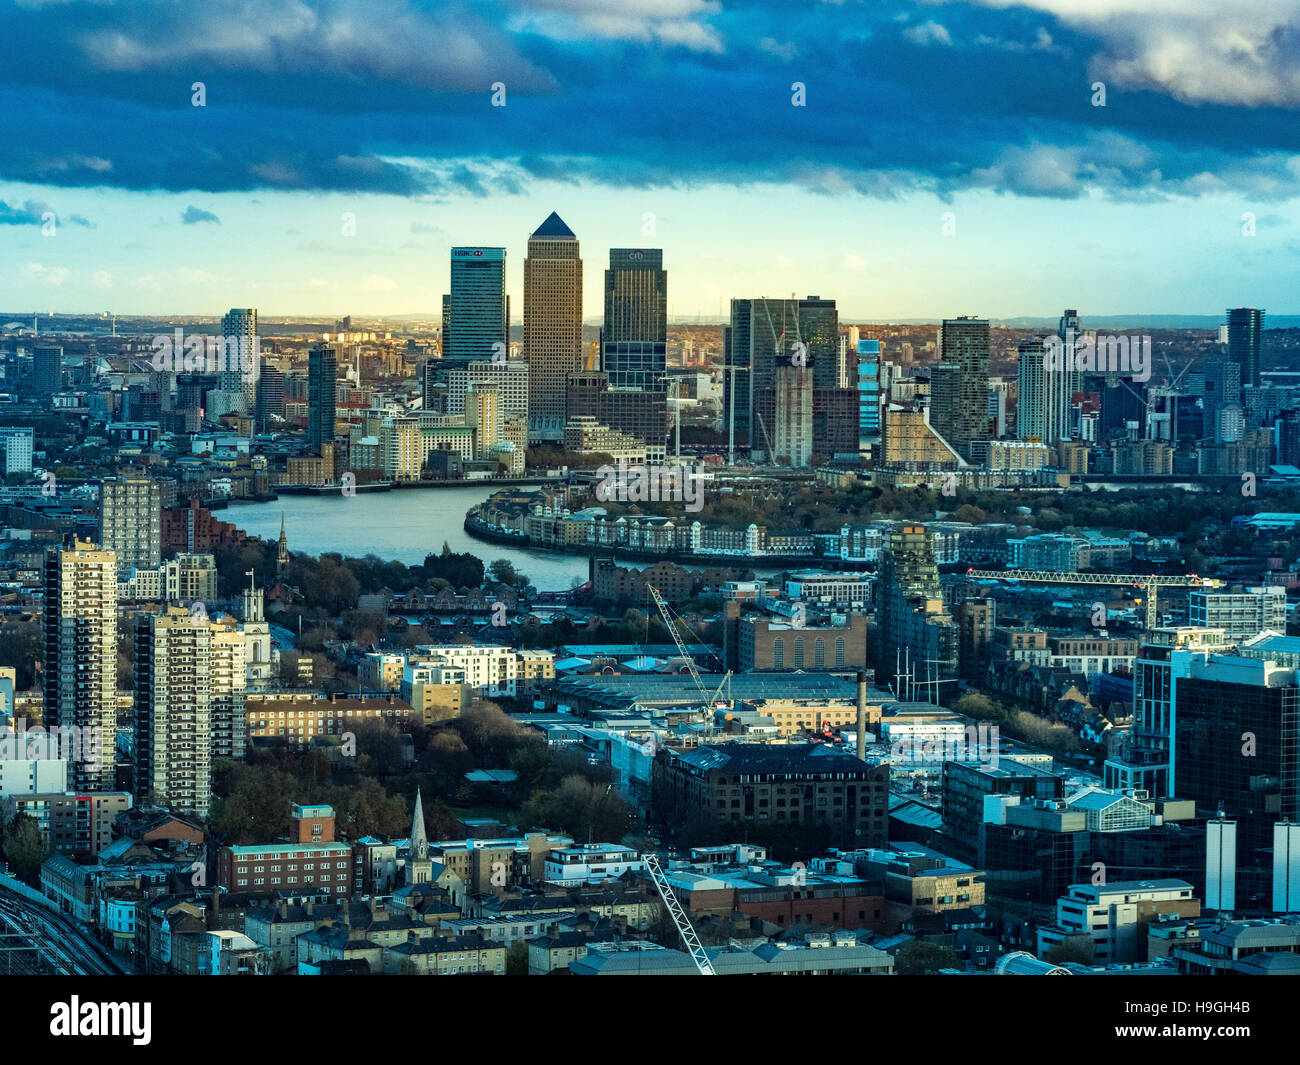 Canary Wharf and River Thames, London, UK. - Stock Image